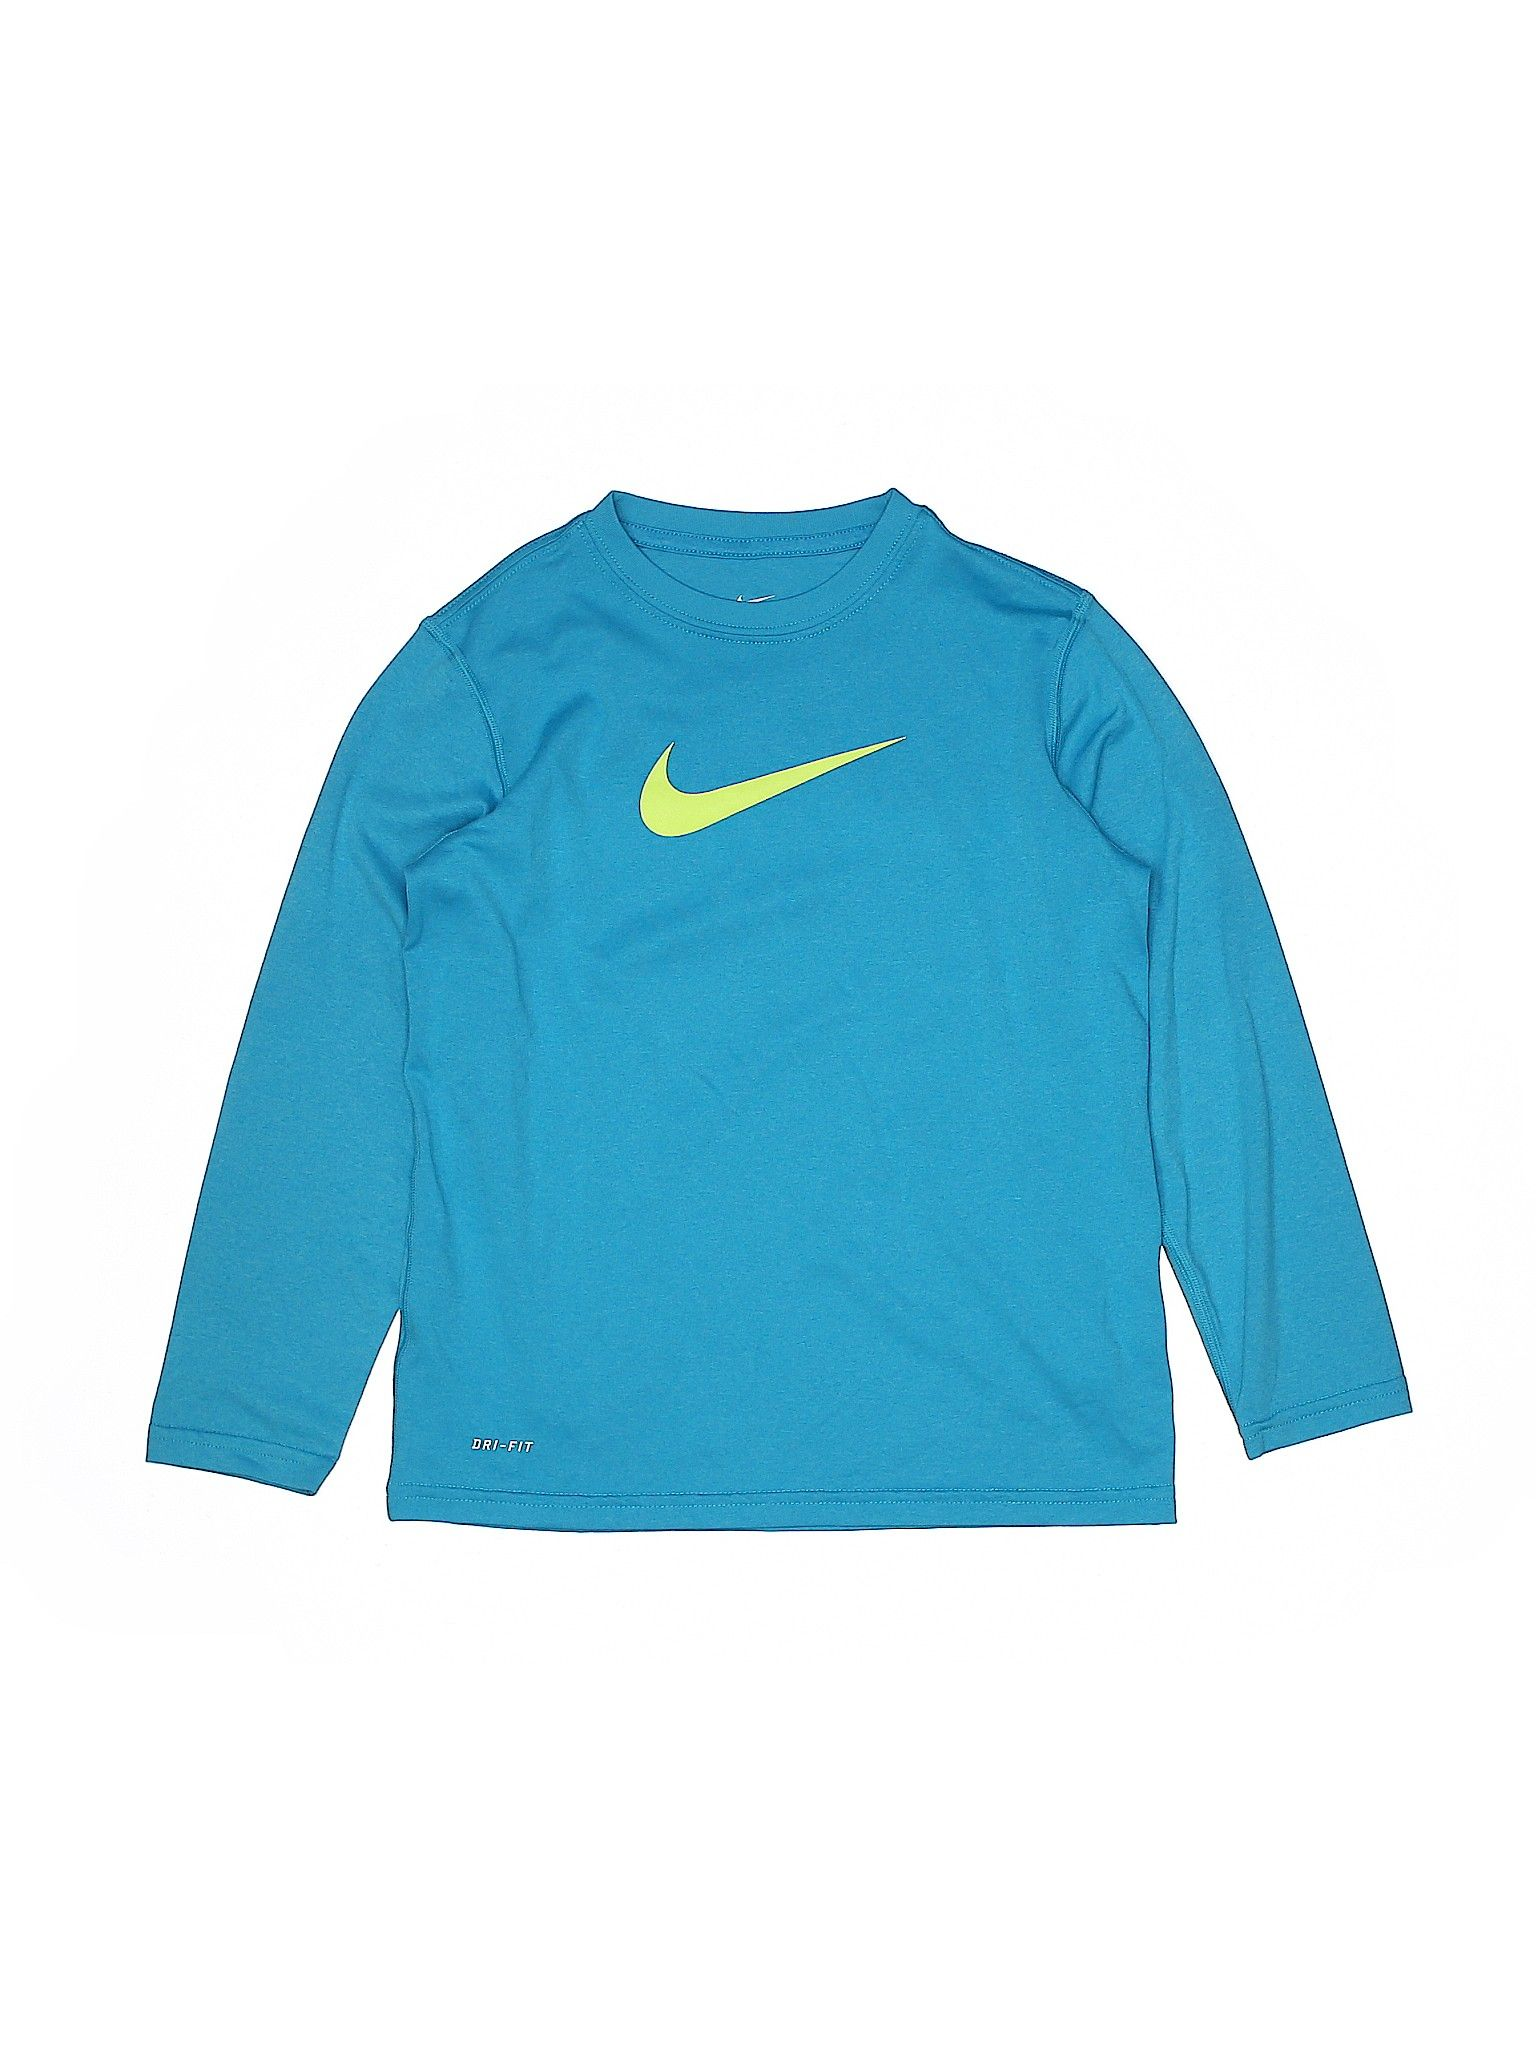 Boys Nike Size Small Long Sleeved T's